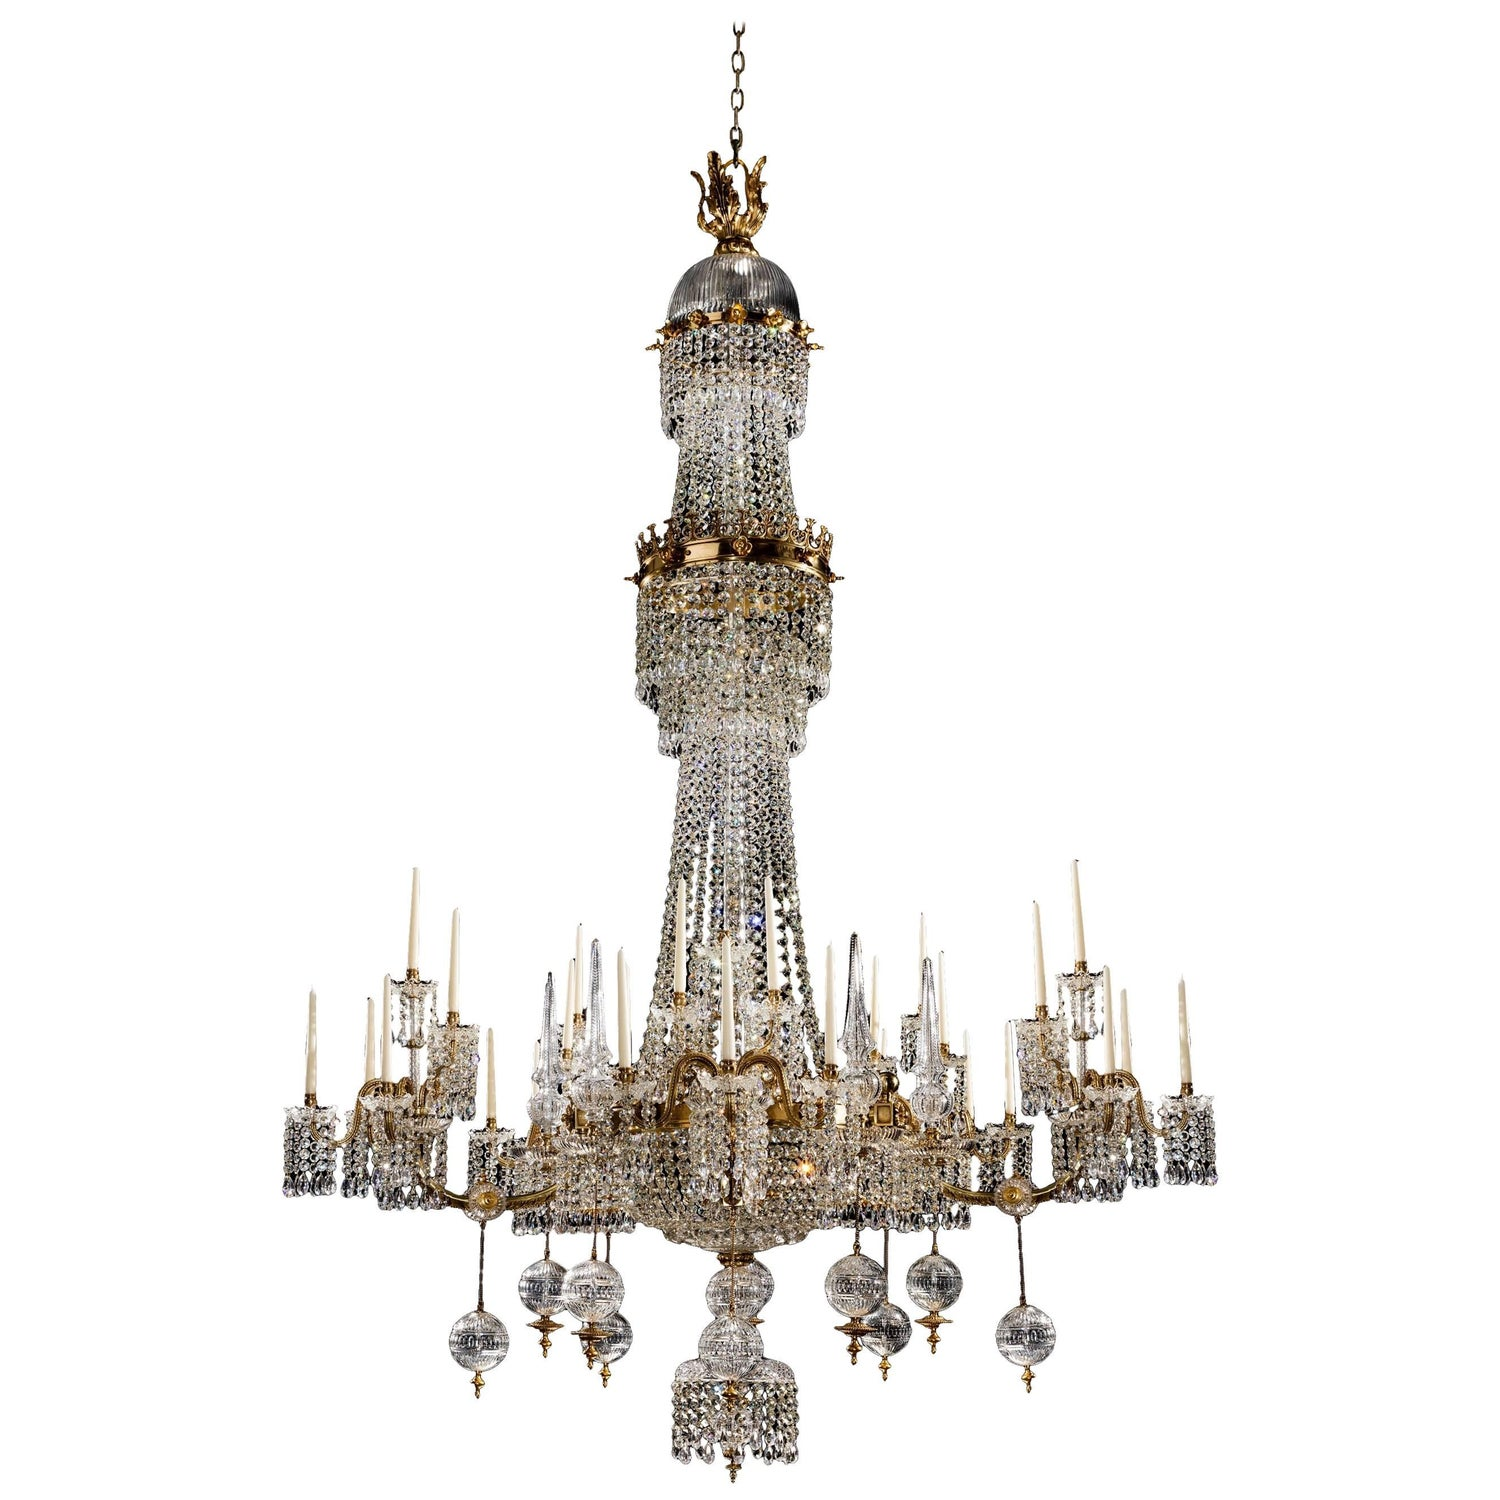 Victorian Sixteen Light Cut Glass Antique Chandelier by Perry and